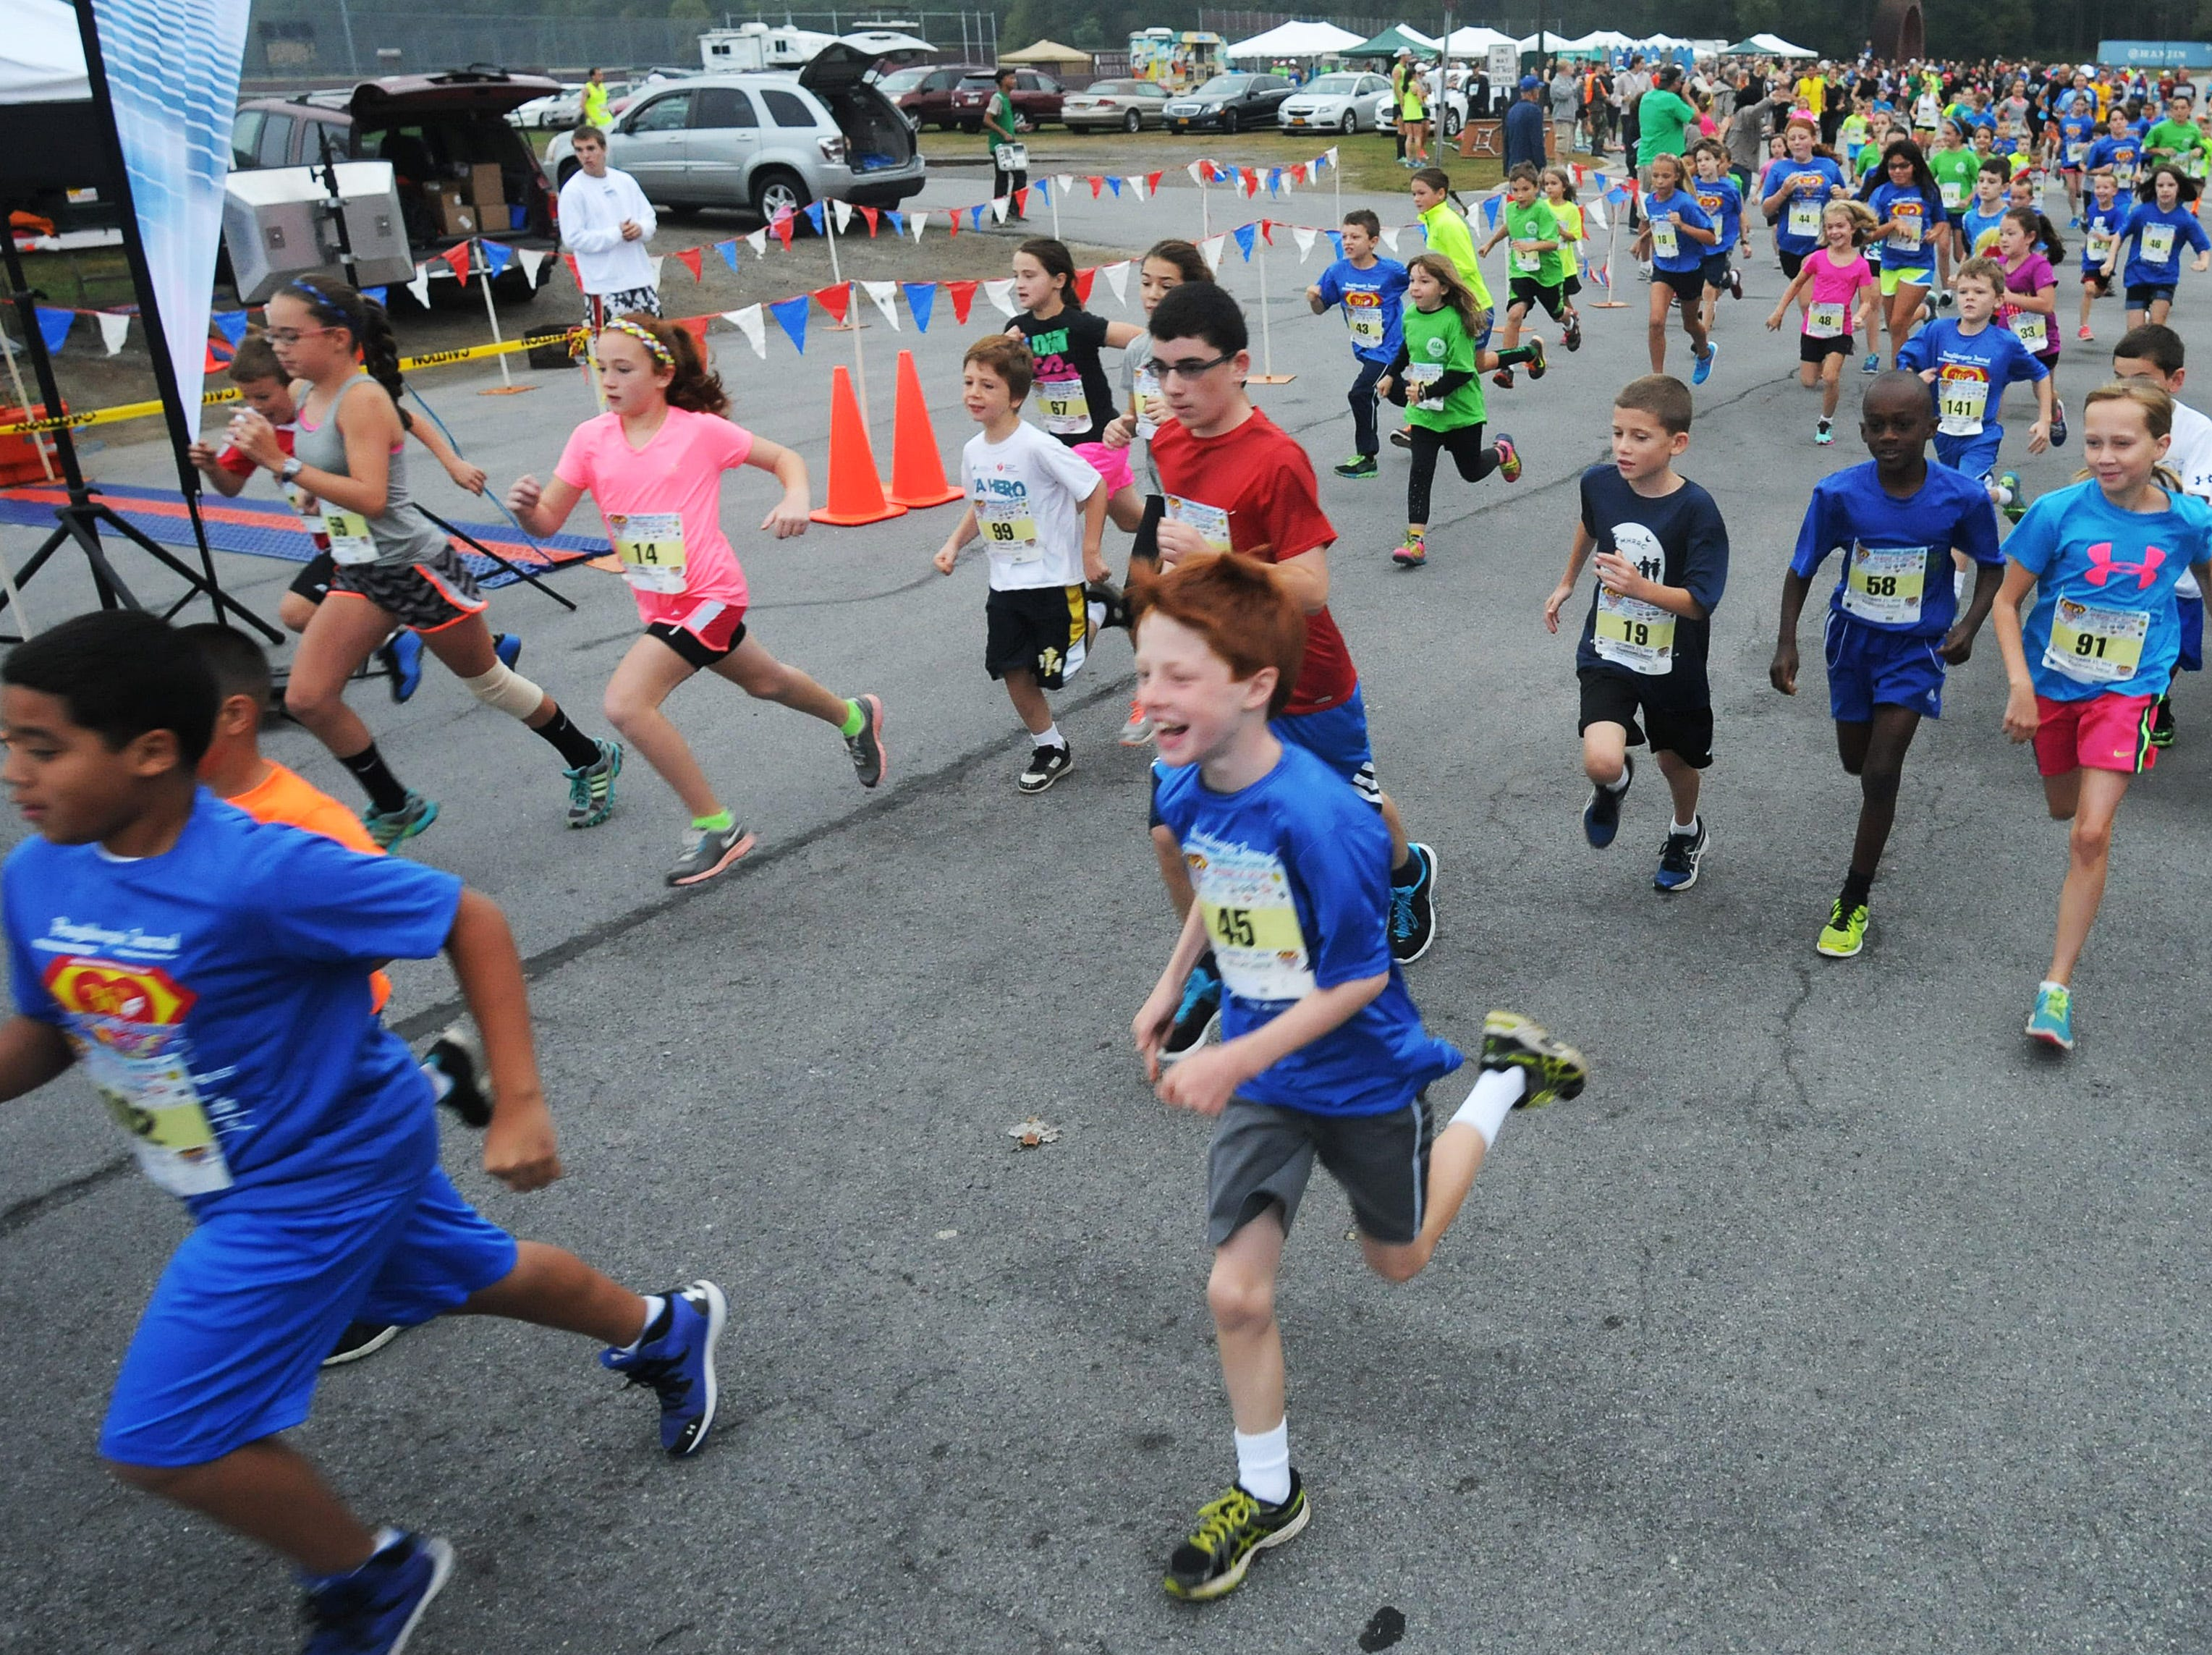 Runners start the Dutchess County Classic 1-mile kids race on Sunday in Freedom Plains. Sept. 21, 2014